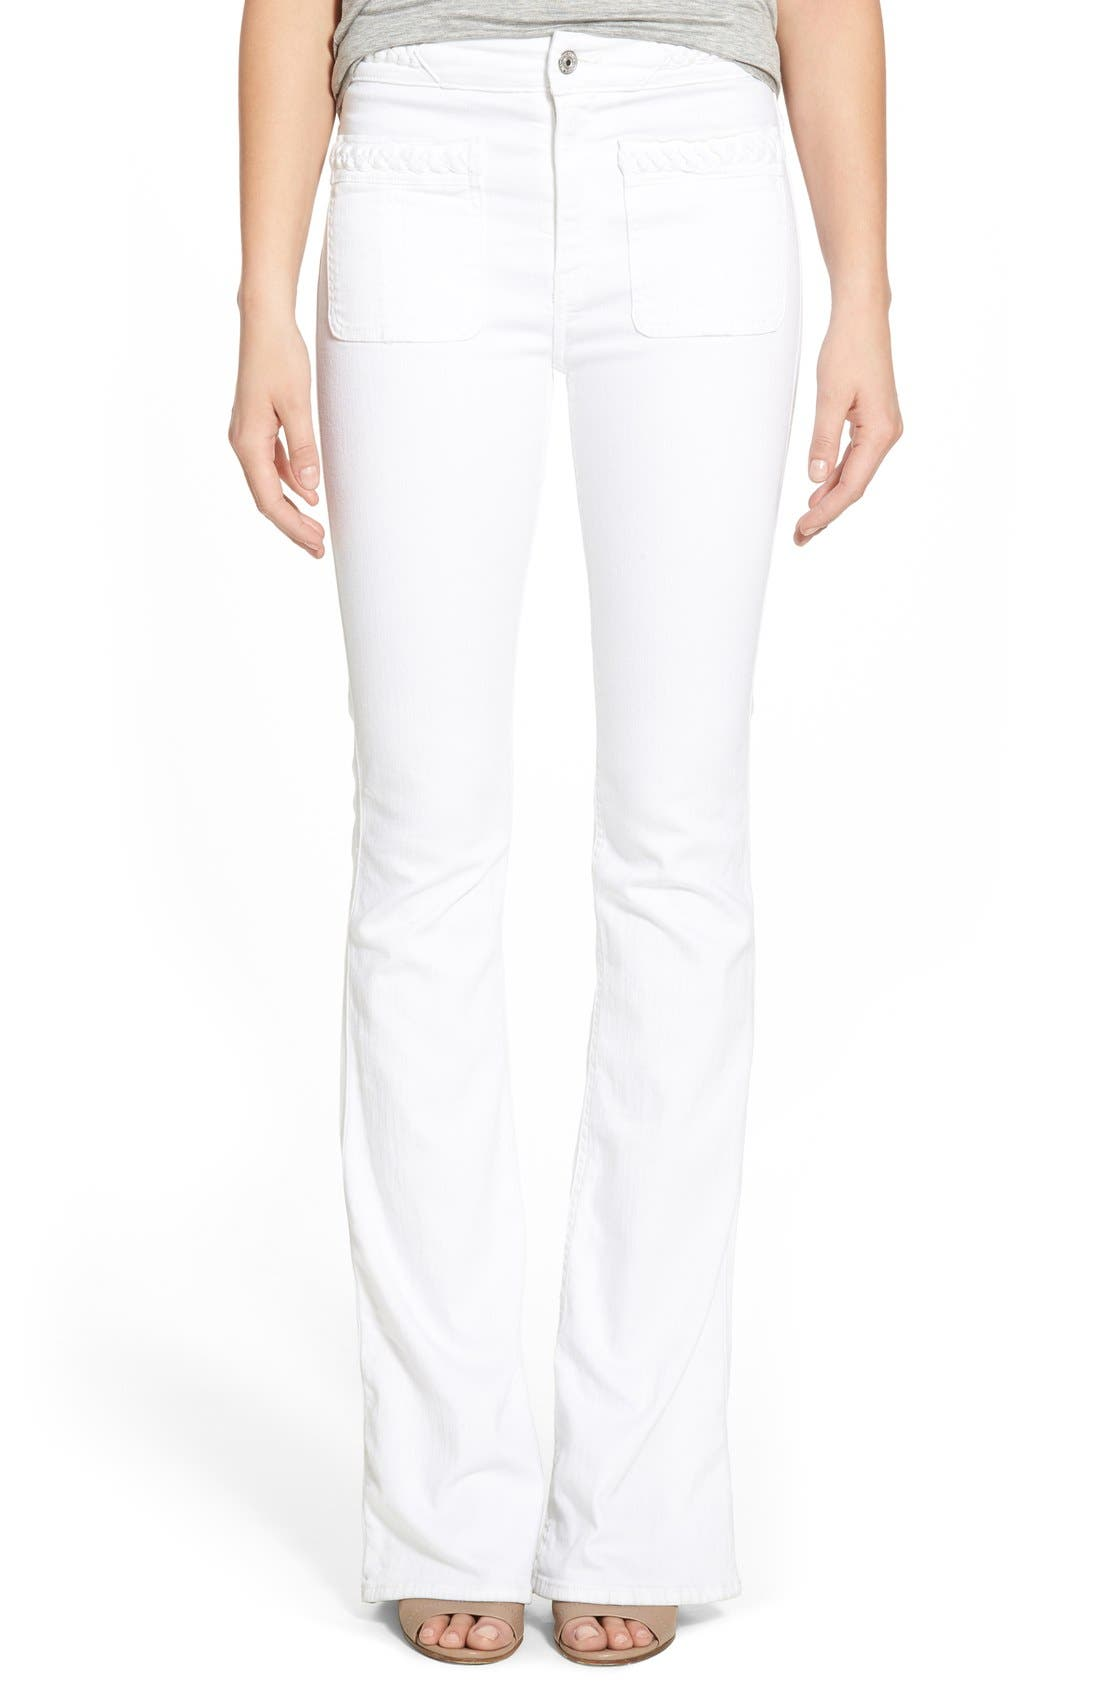 Main Image - 7 For All Mankind® High Rise Braided Trim Flare Jeans (White Fashion)